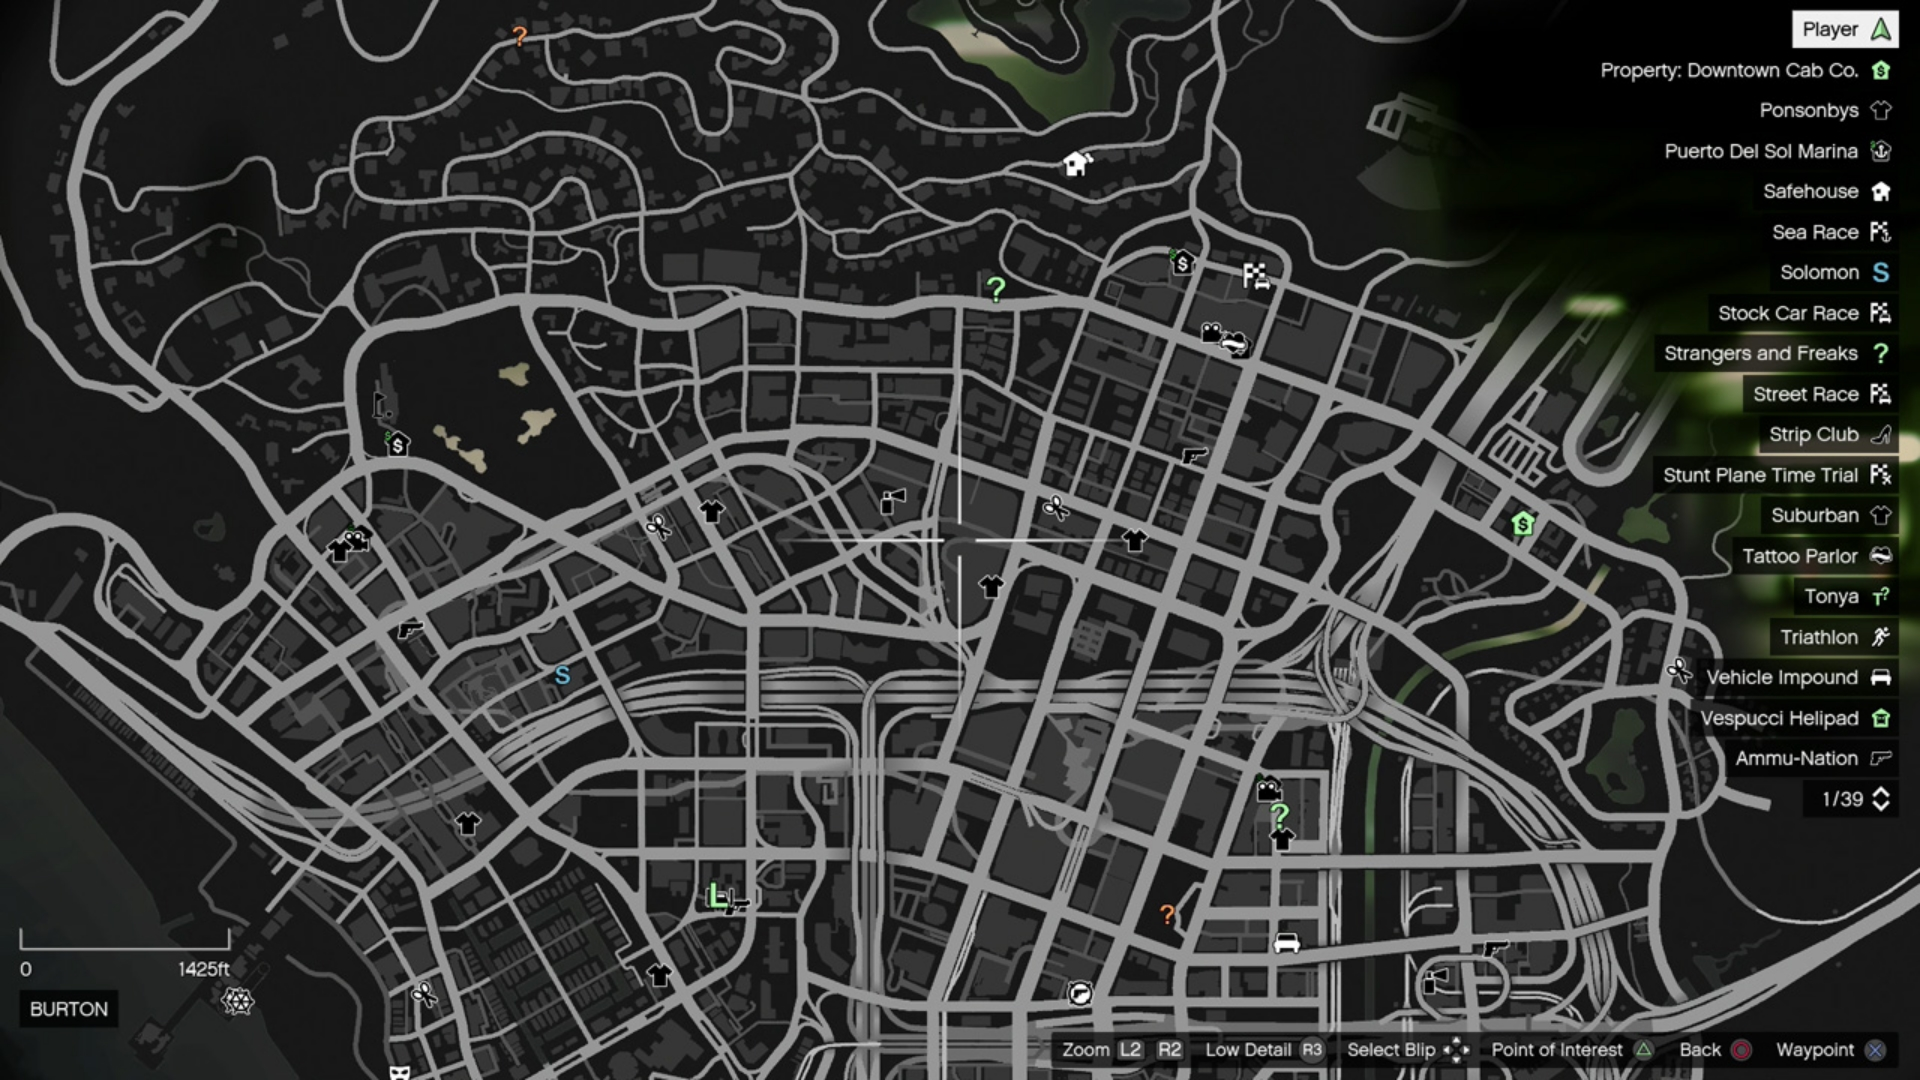 Gta 6 Map Of America.Gta 6 Release Date All The Latest Details On The New Grand Theft